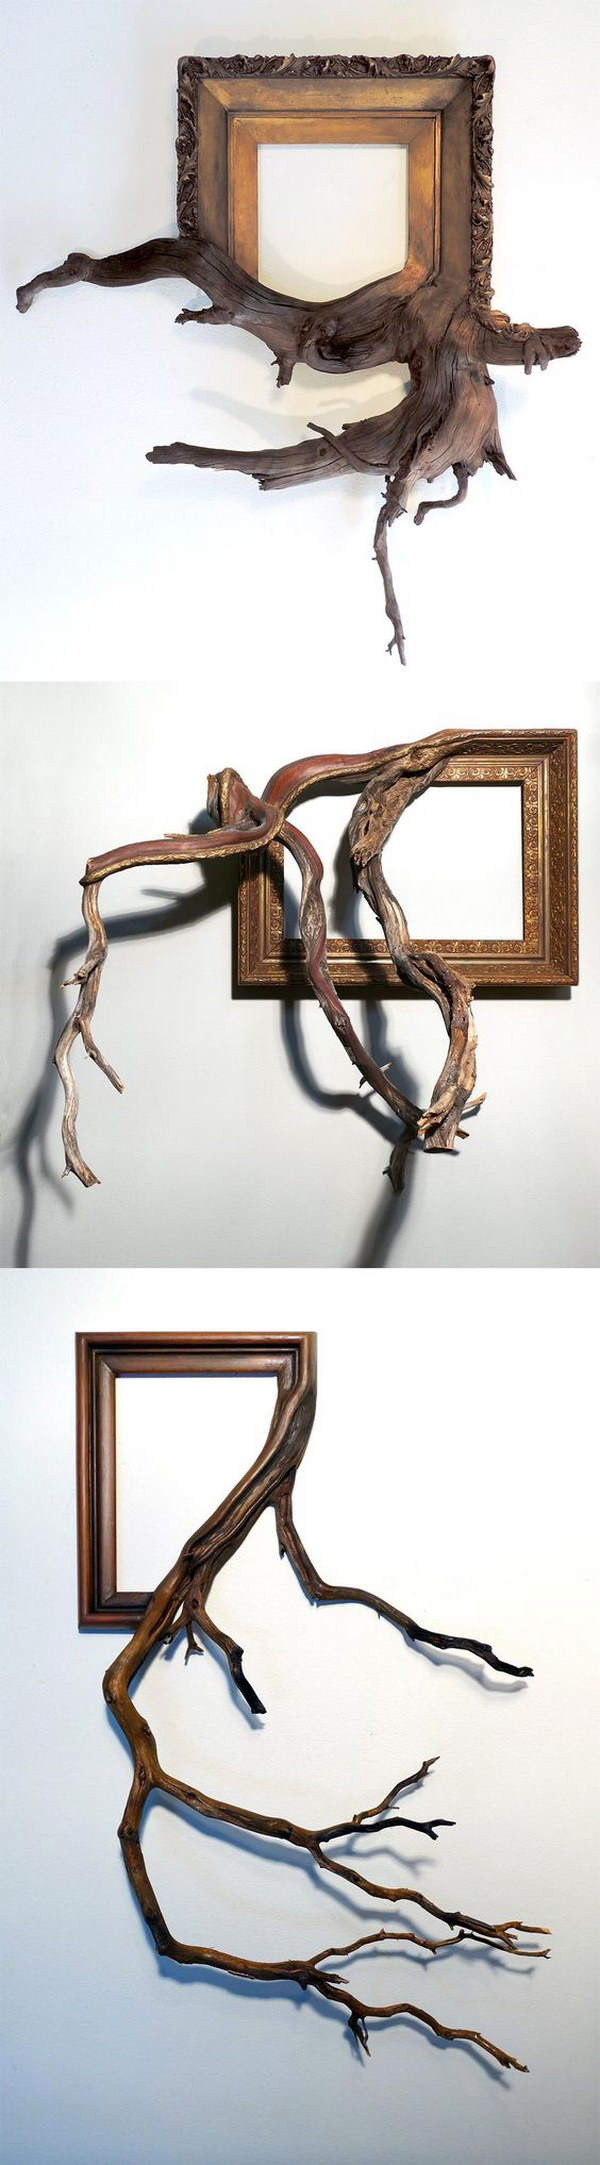 Ornate Vintage Picture Frames with Tree Branches.